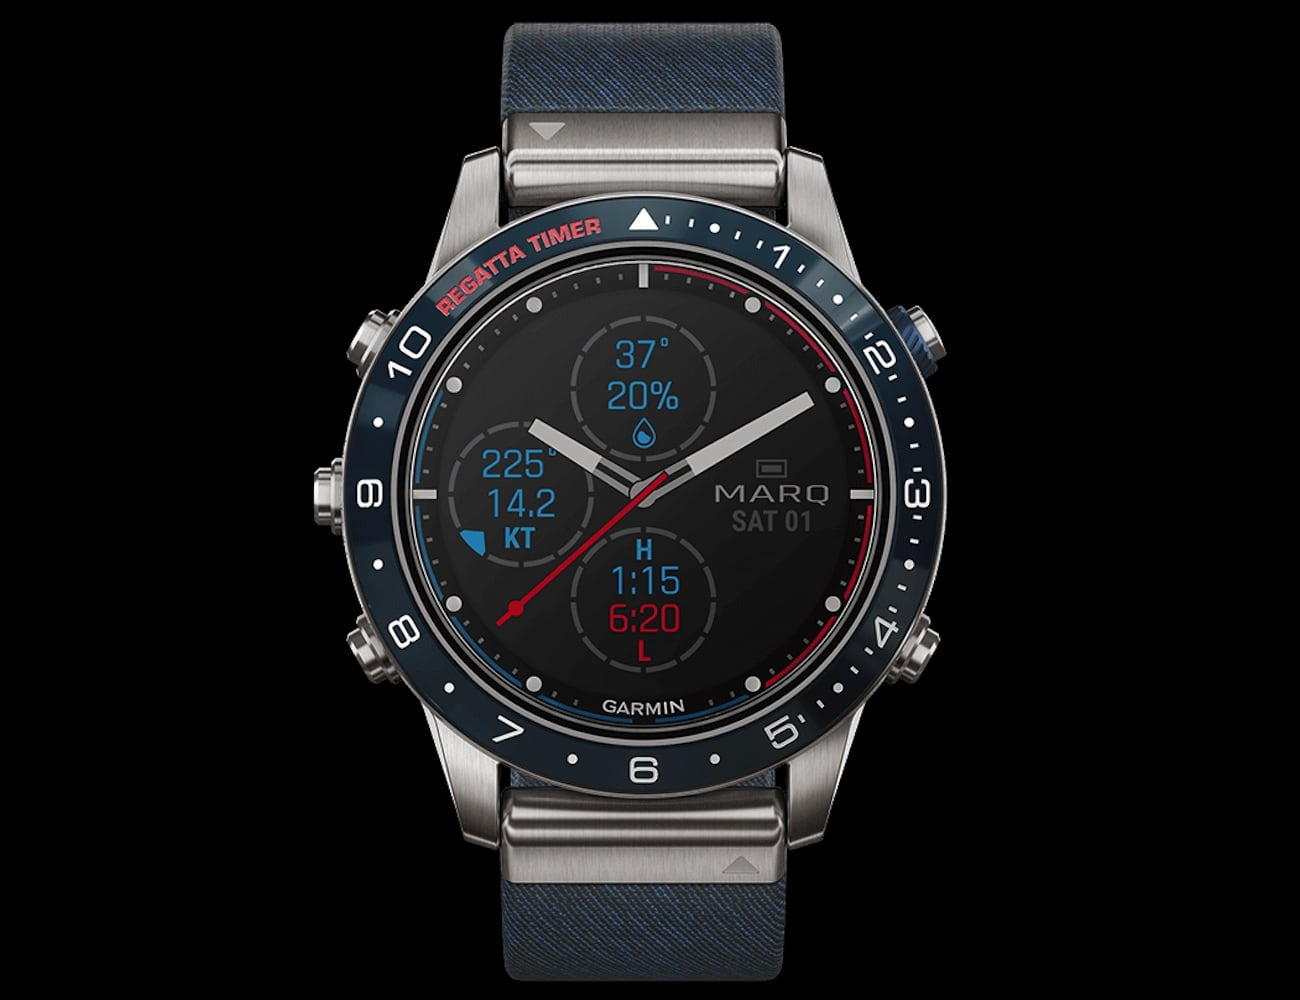 Garmin MARQ Captain Modern Tool Smartwatch is made for life at sea